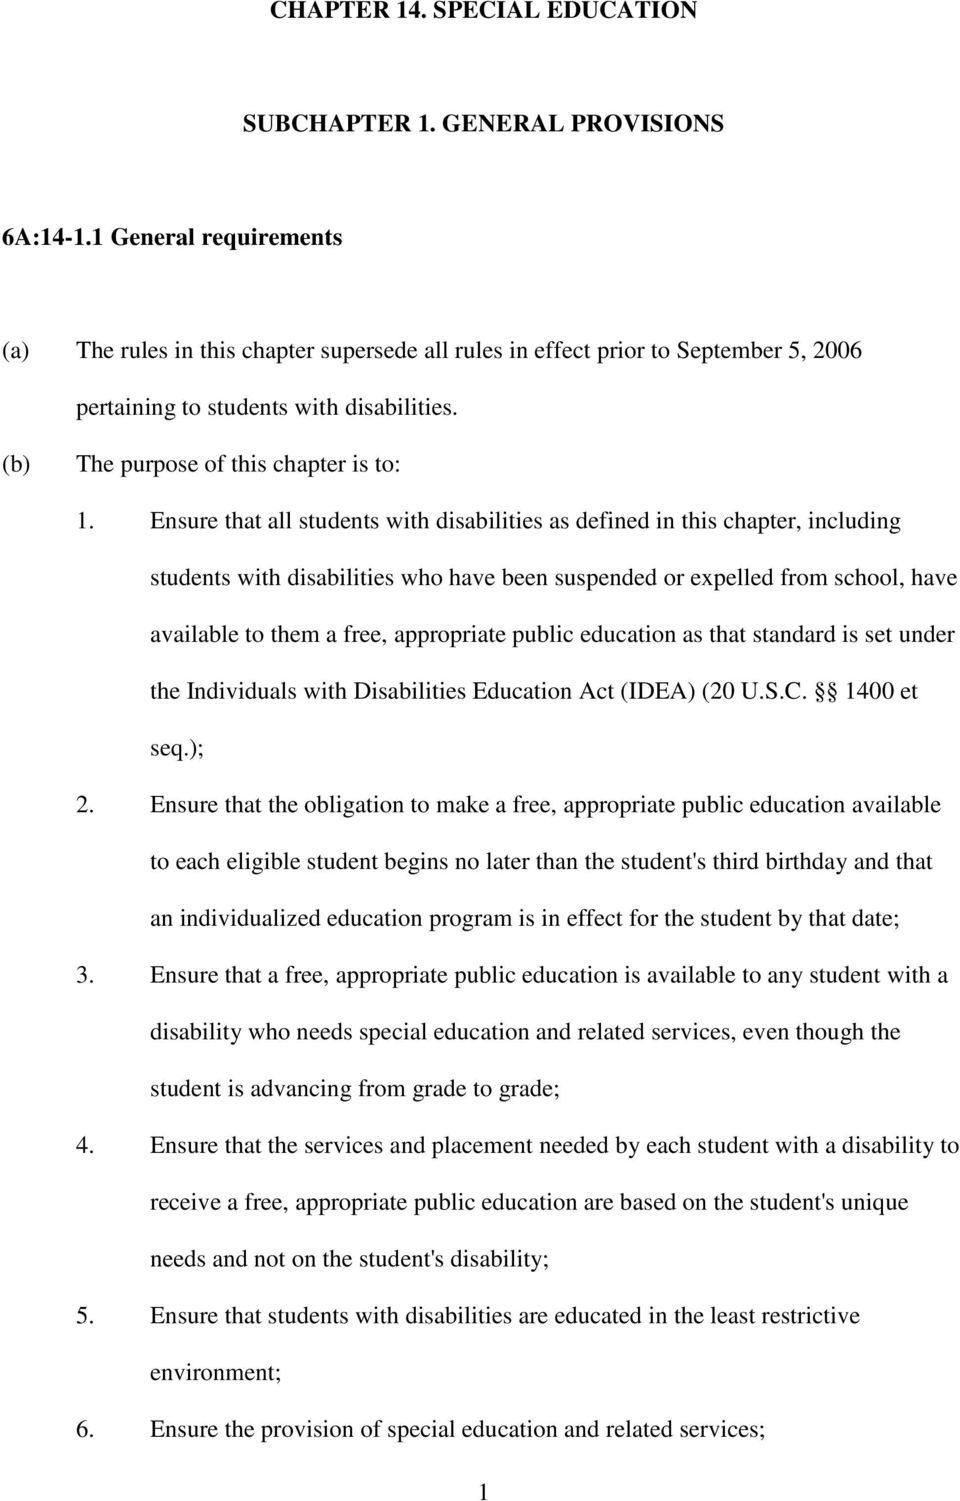 Ensure that all students with disabilities as defined in this chapter, including students with disabilities who have been suspended or expelled from school, have available to them a free, appropriate